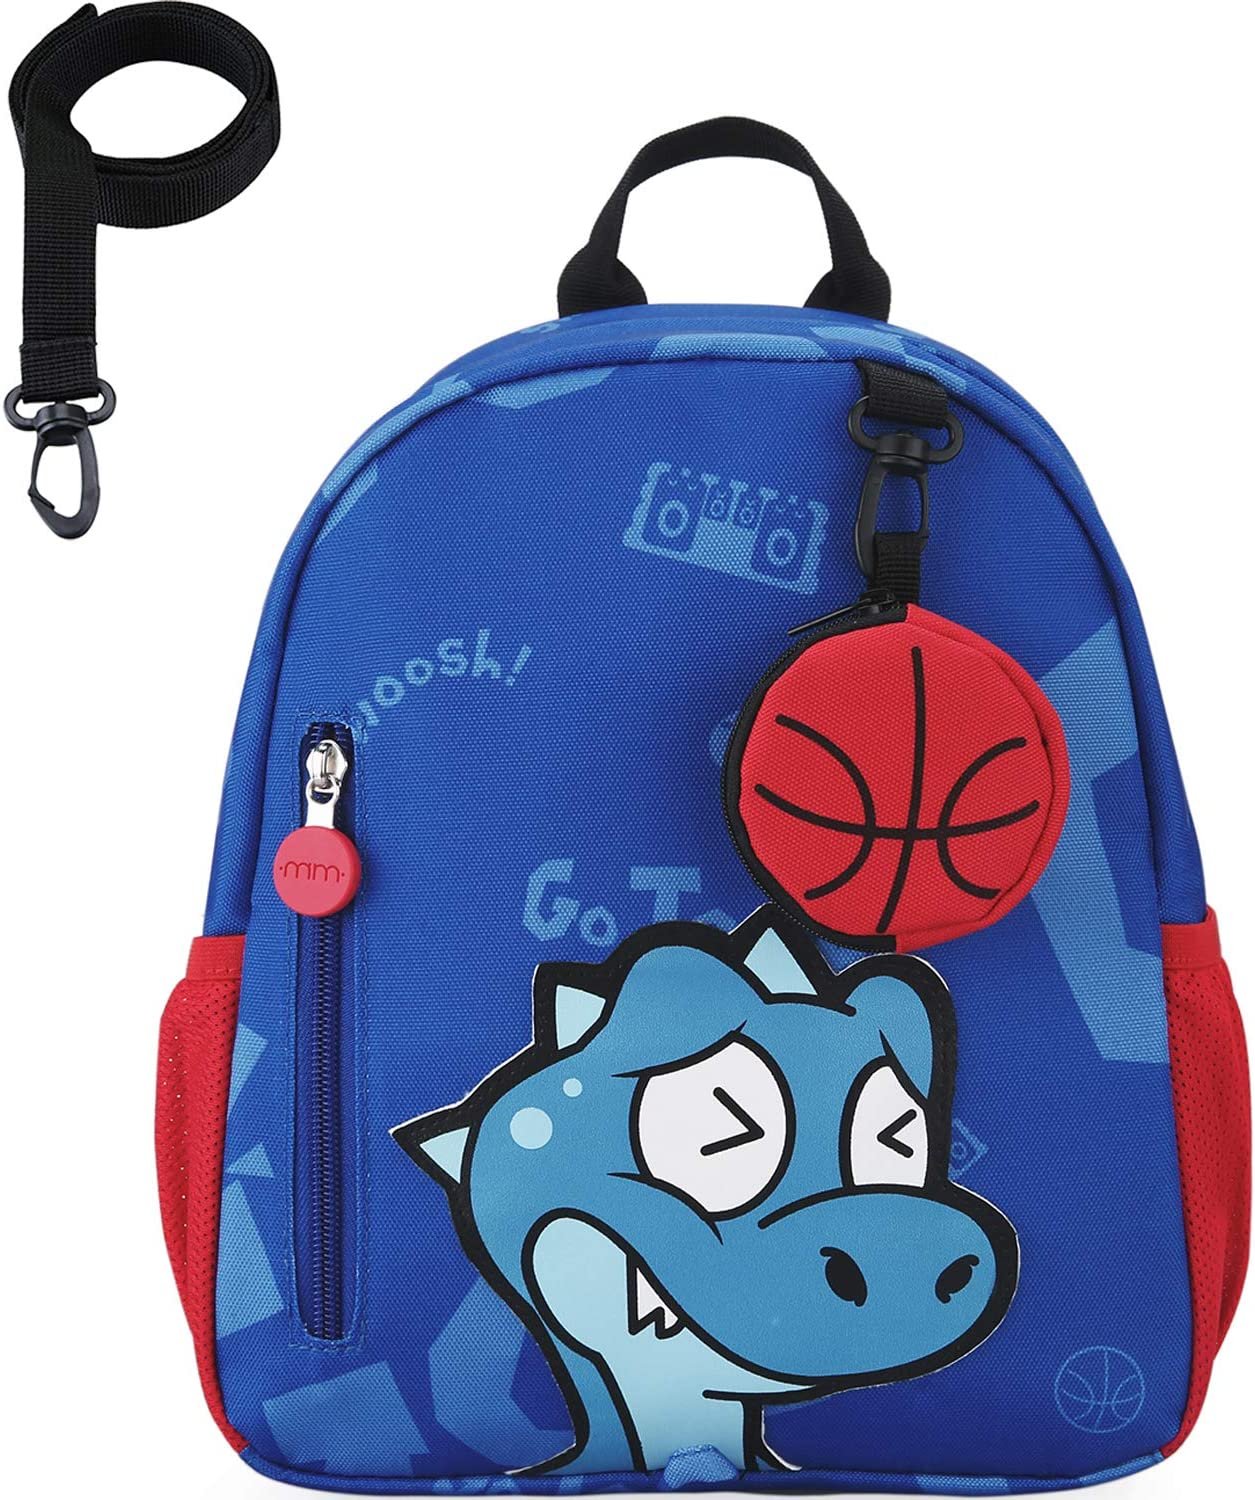 mommore Toddler Backpack Dinosaur with Safety Leash Cute Basketball Pouch Preschool Kids Lunch Bag, Blue